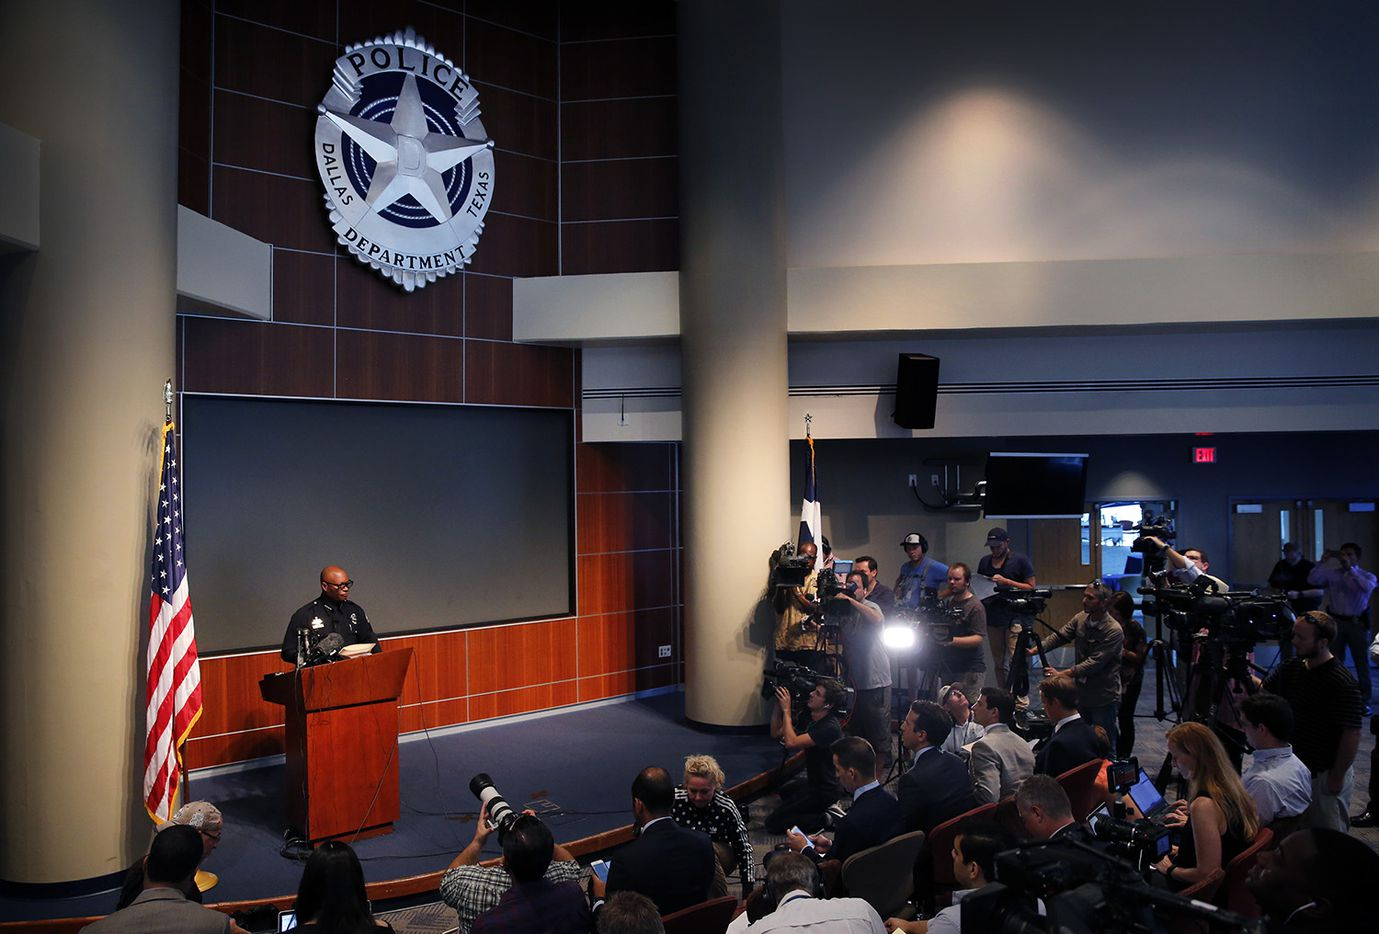 Dallas police chief David Brown responds to questions about last week's shooting of his officers during a press conference at police headquarters in Dallas, Monday, July 11, 2016.